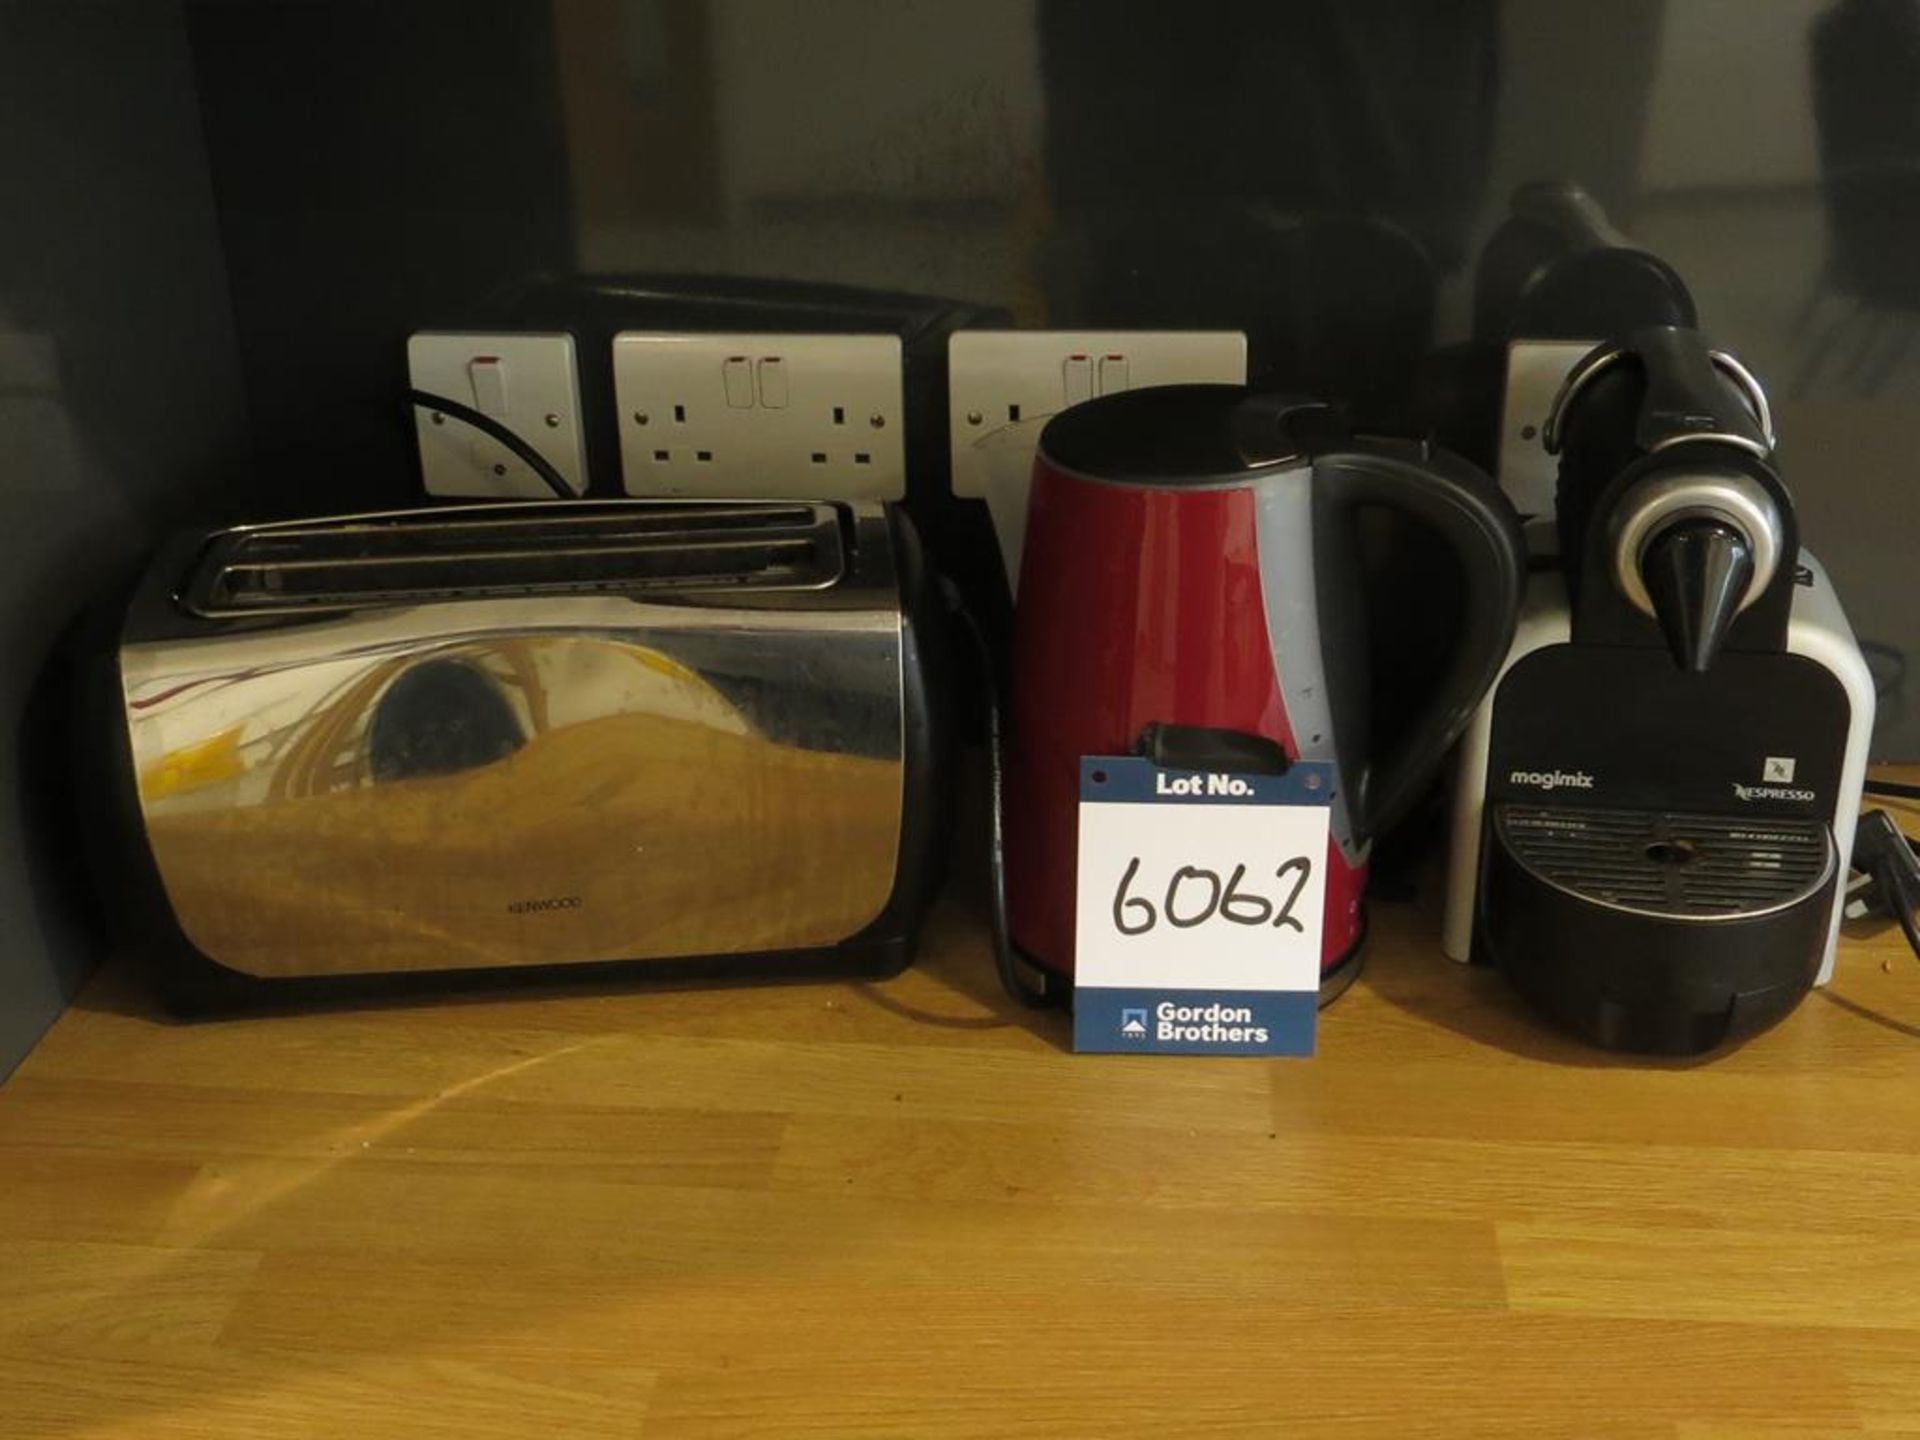 Lot 6062 - Kenwood toaster, Russell Hobbs kettle and Nespress